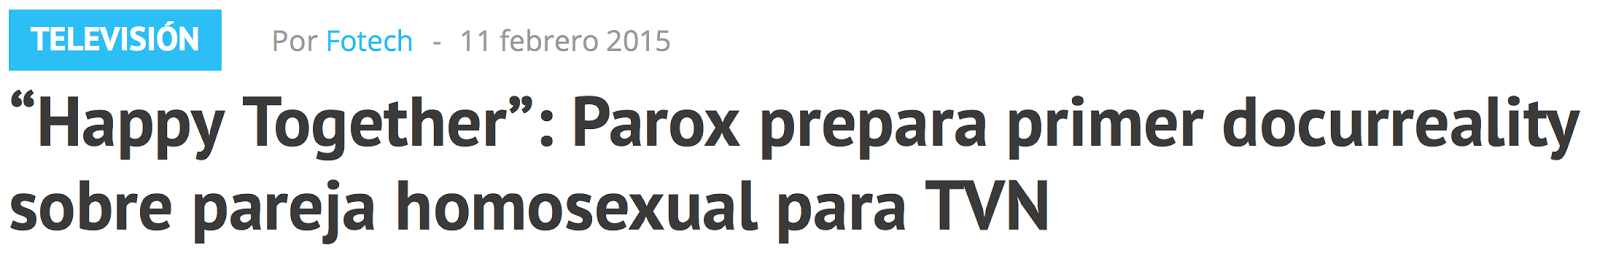 http://www.fotech.cl/happy-together-parox-prepara-primer-docurreality-sobre-pareja-homosexual-para-tvn/2015/02/11/?fb_action_ids=10153749786804968&fb_action_types=og.likes&fb_ref=below-post&fb_source=other_multiline&action_object_map={%2210153749786804968%22%3A833625596684184}&action_type_map={%2210153749786804968%22%3A%22og.likes%22}&action_ref_map={%2210153749786804968%22%3A%22below-post%22